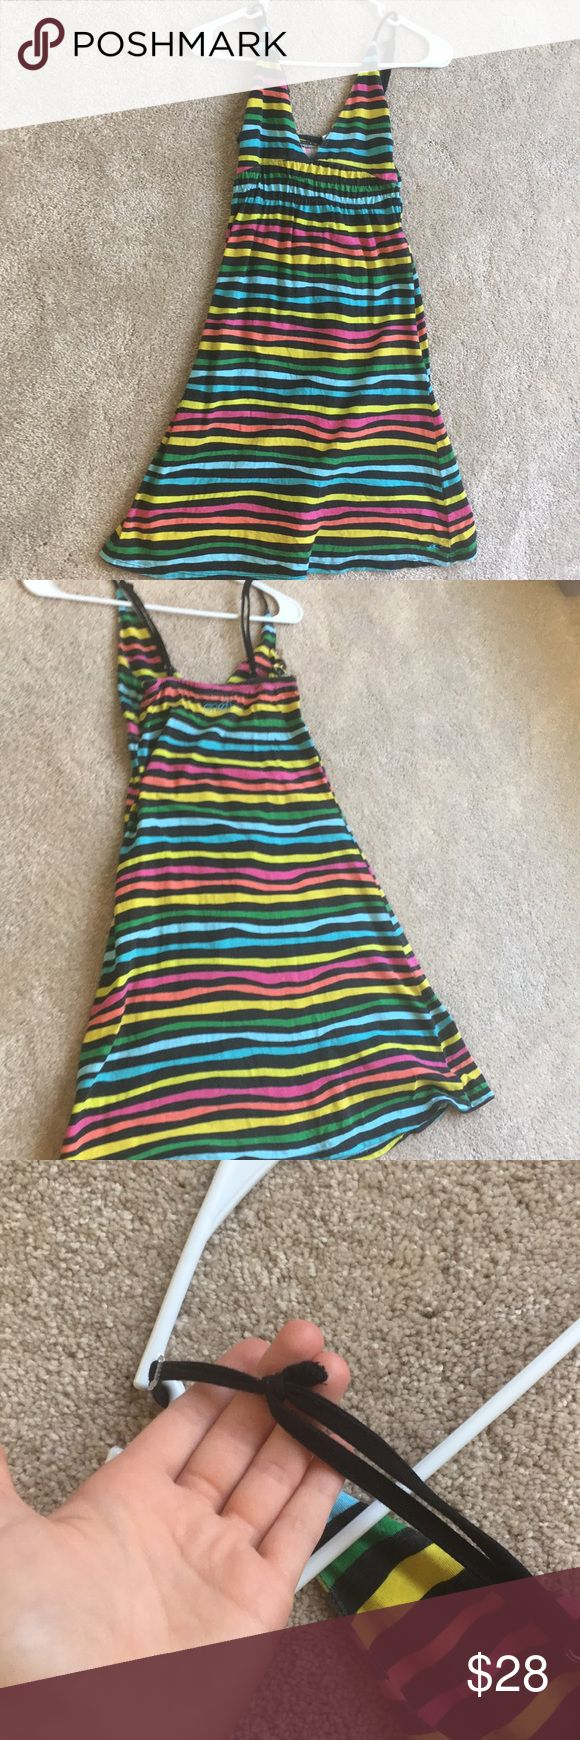 Roxy Rainbow Striped Beach Dress Super cute dress, if it doesn't sell I may just keep it! I love this dress (price reflects that). One flaw as a strap broke and it was knot repaired (shown in last picture). 100% cotton. O'Neill Dresses Midi